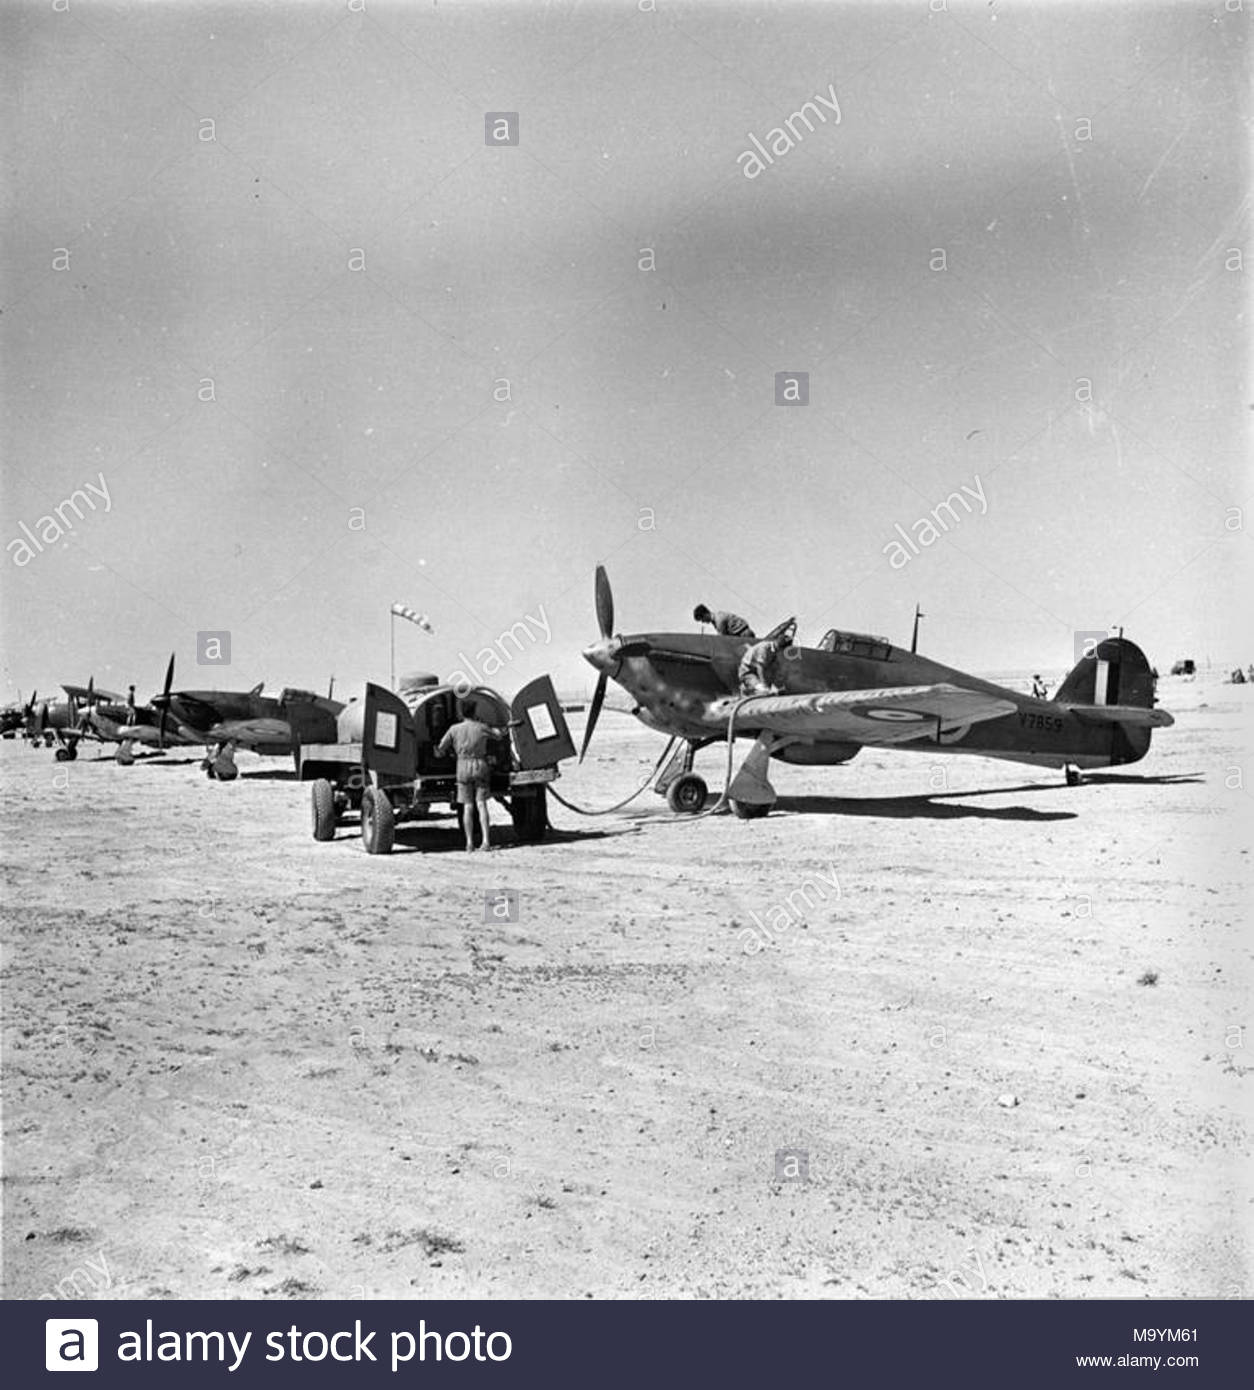 [ARMA HOBBY] Hurricane Mk I metal wing 1/72 -- 73sq Flight B James DENIS (FINI) - Page 4 Royal-air-force-operations-in-the-middle-east-and-north-africa-1939-1943-ground-crew-refuelling-hawker-hurricane-tac-r-mark-i-v7859-73-274-sqns-soc-1741-v7851-missing-9441-M9YM61